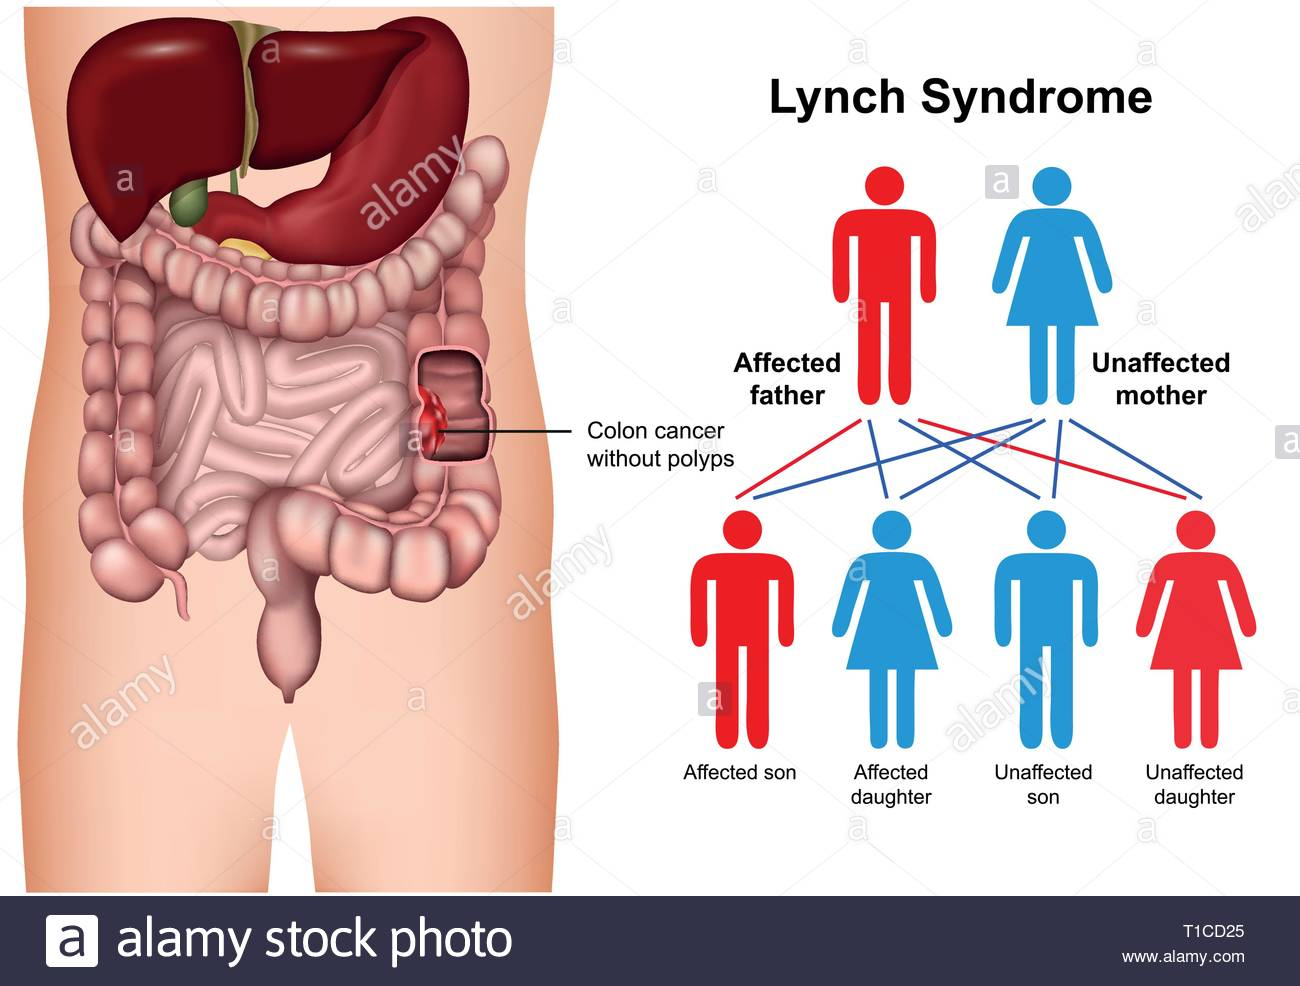 Lynch syndrome disease 3d medical vector illustration on white 1300x986